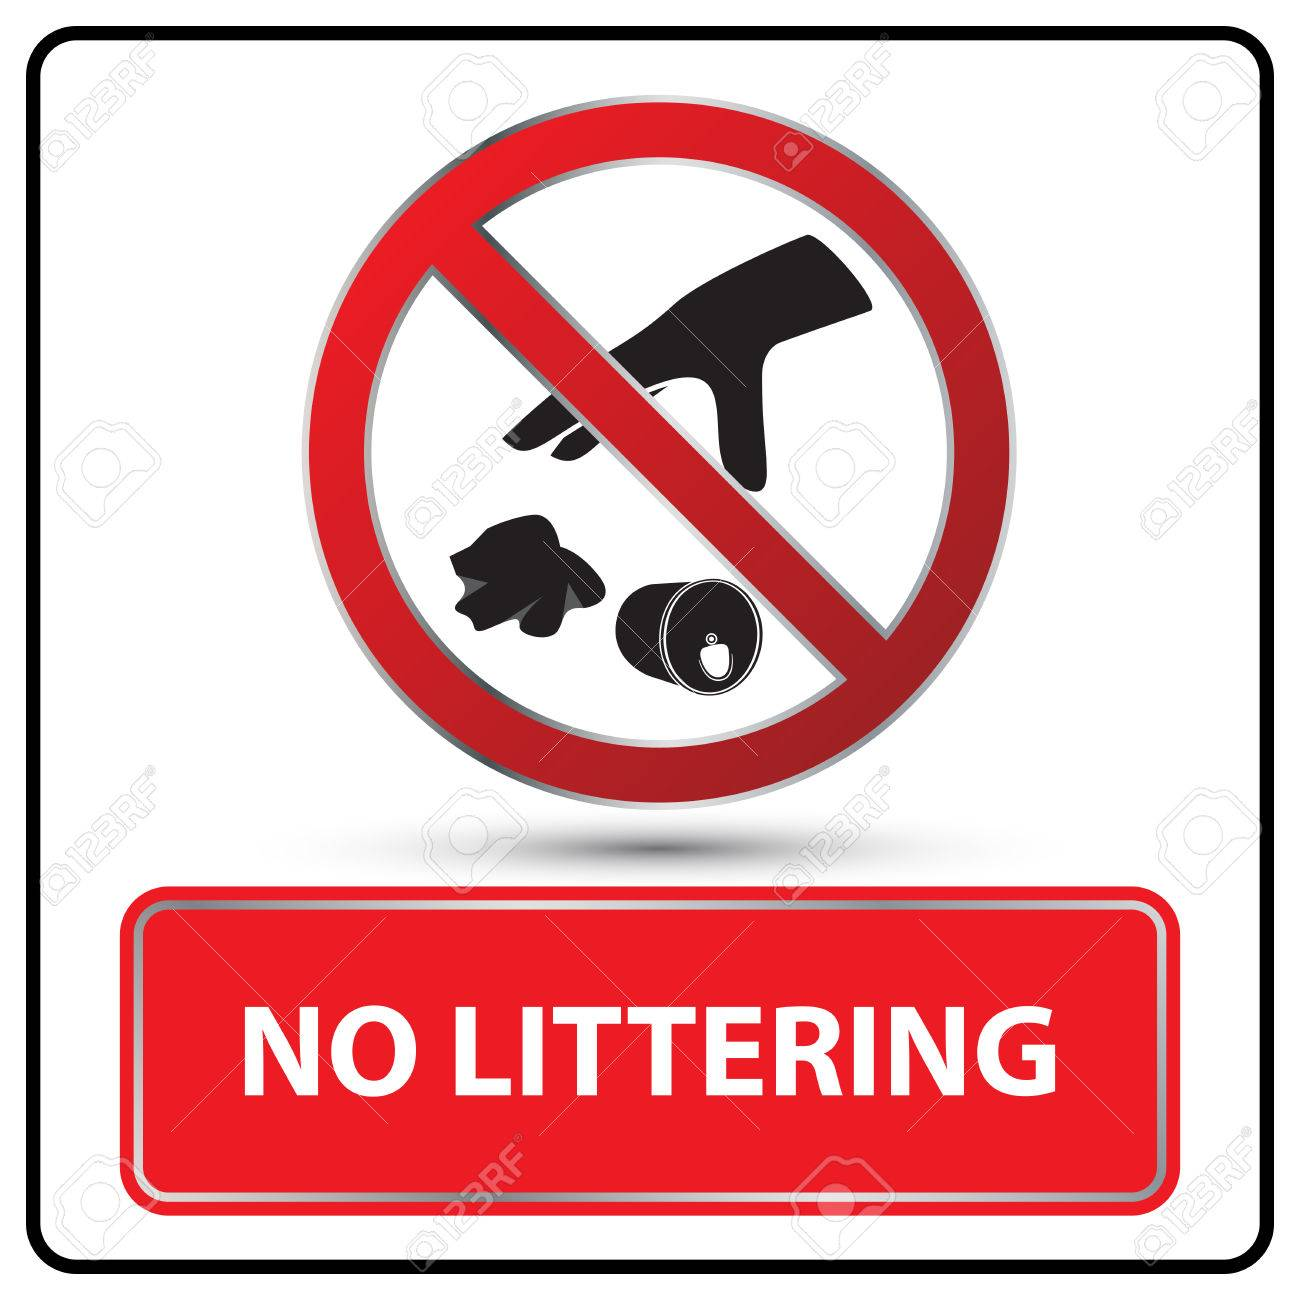 no littering sign vector illustration.